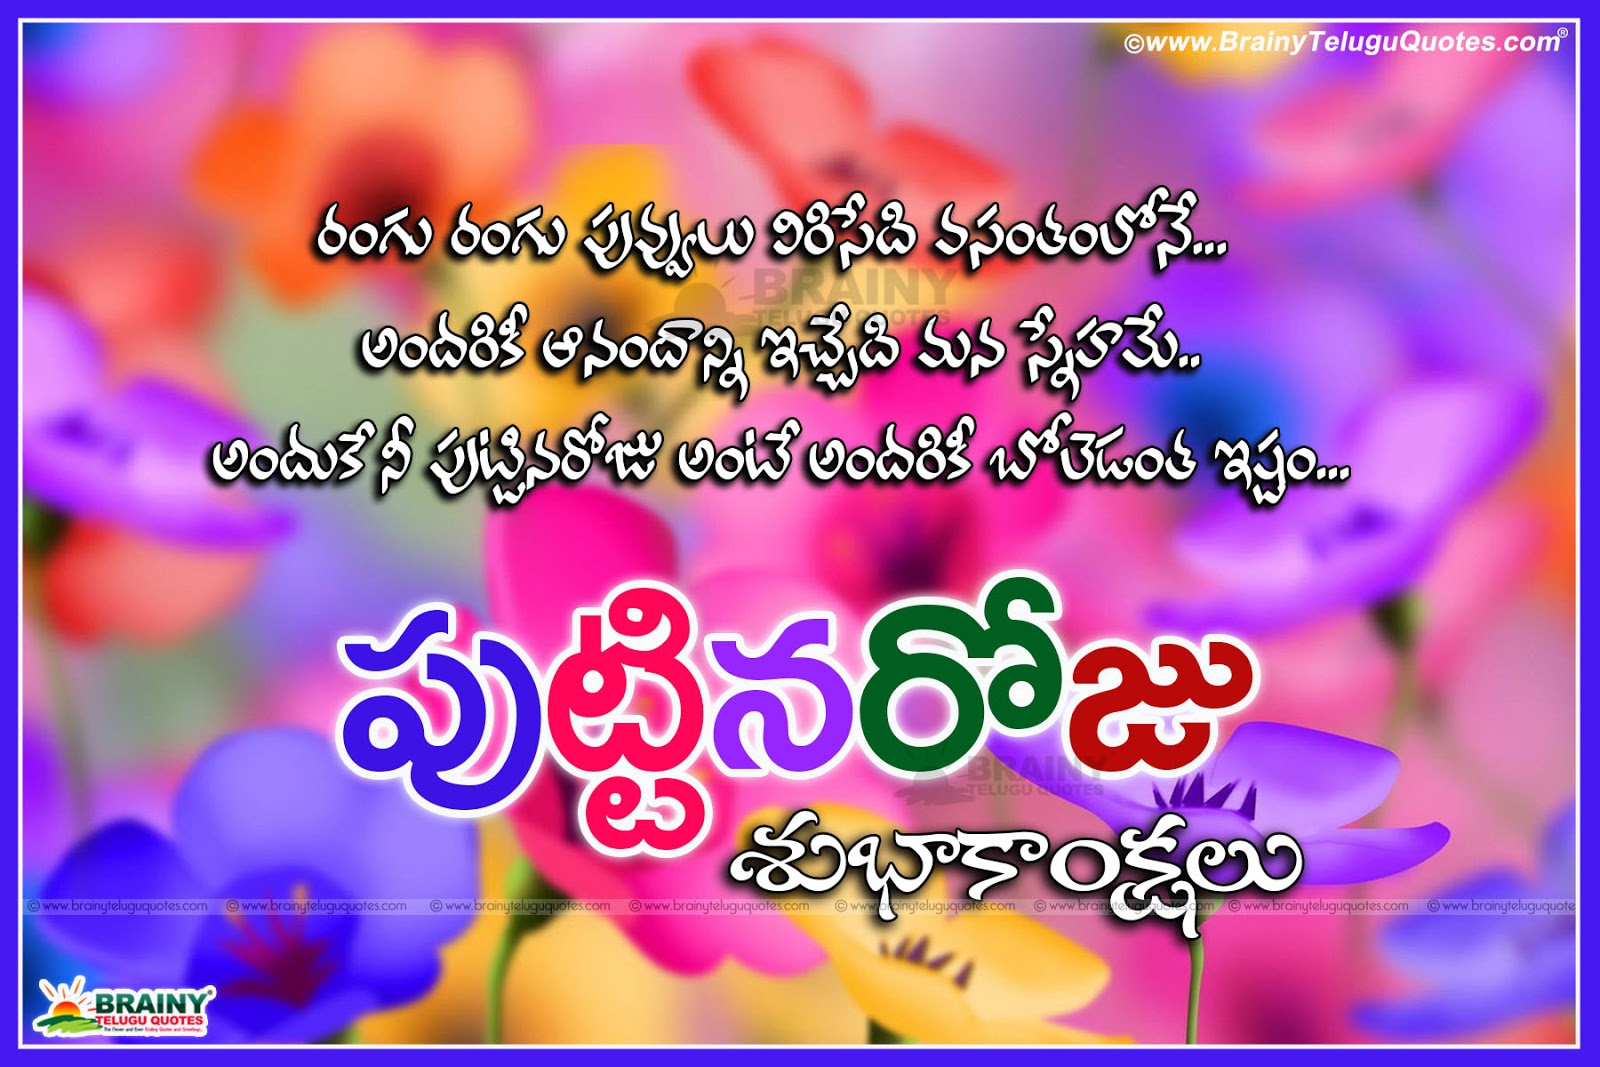 Happy birthday wishes in telugu hd images labzada wallpaper happy birthday hd images telugu yokwallpapers com m4hsunfo